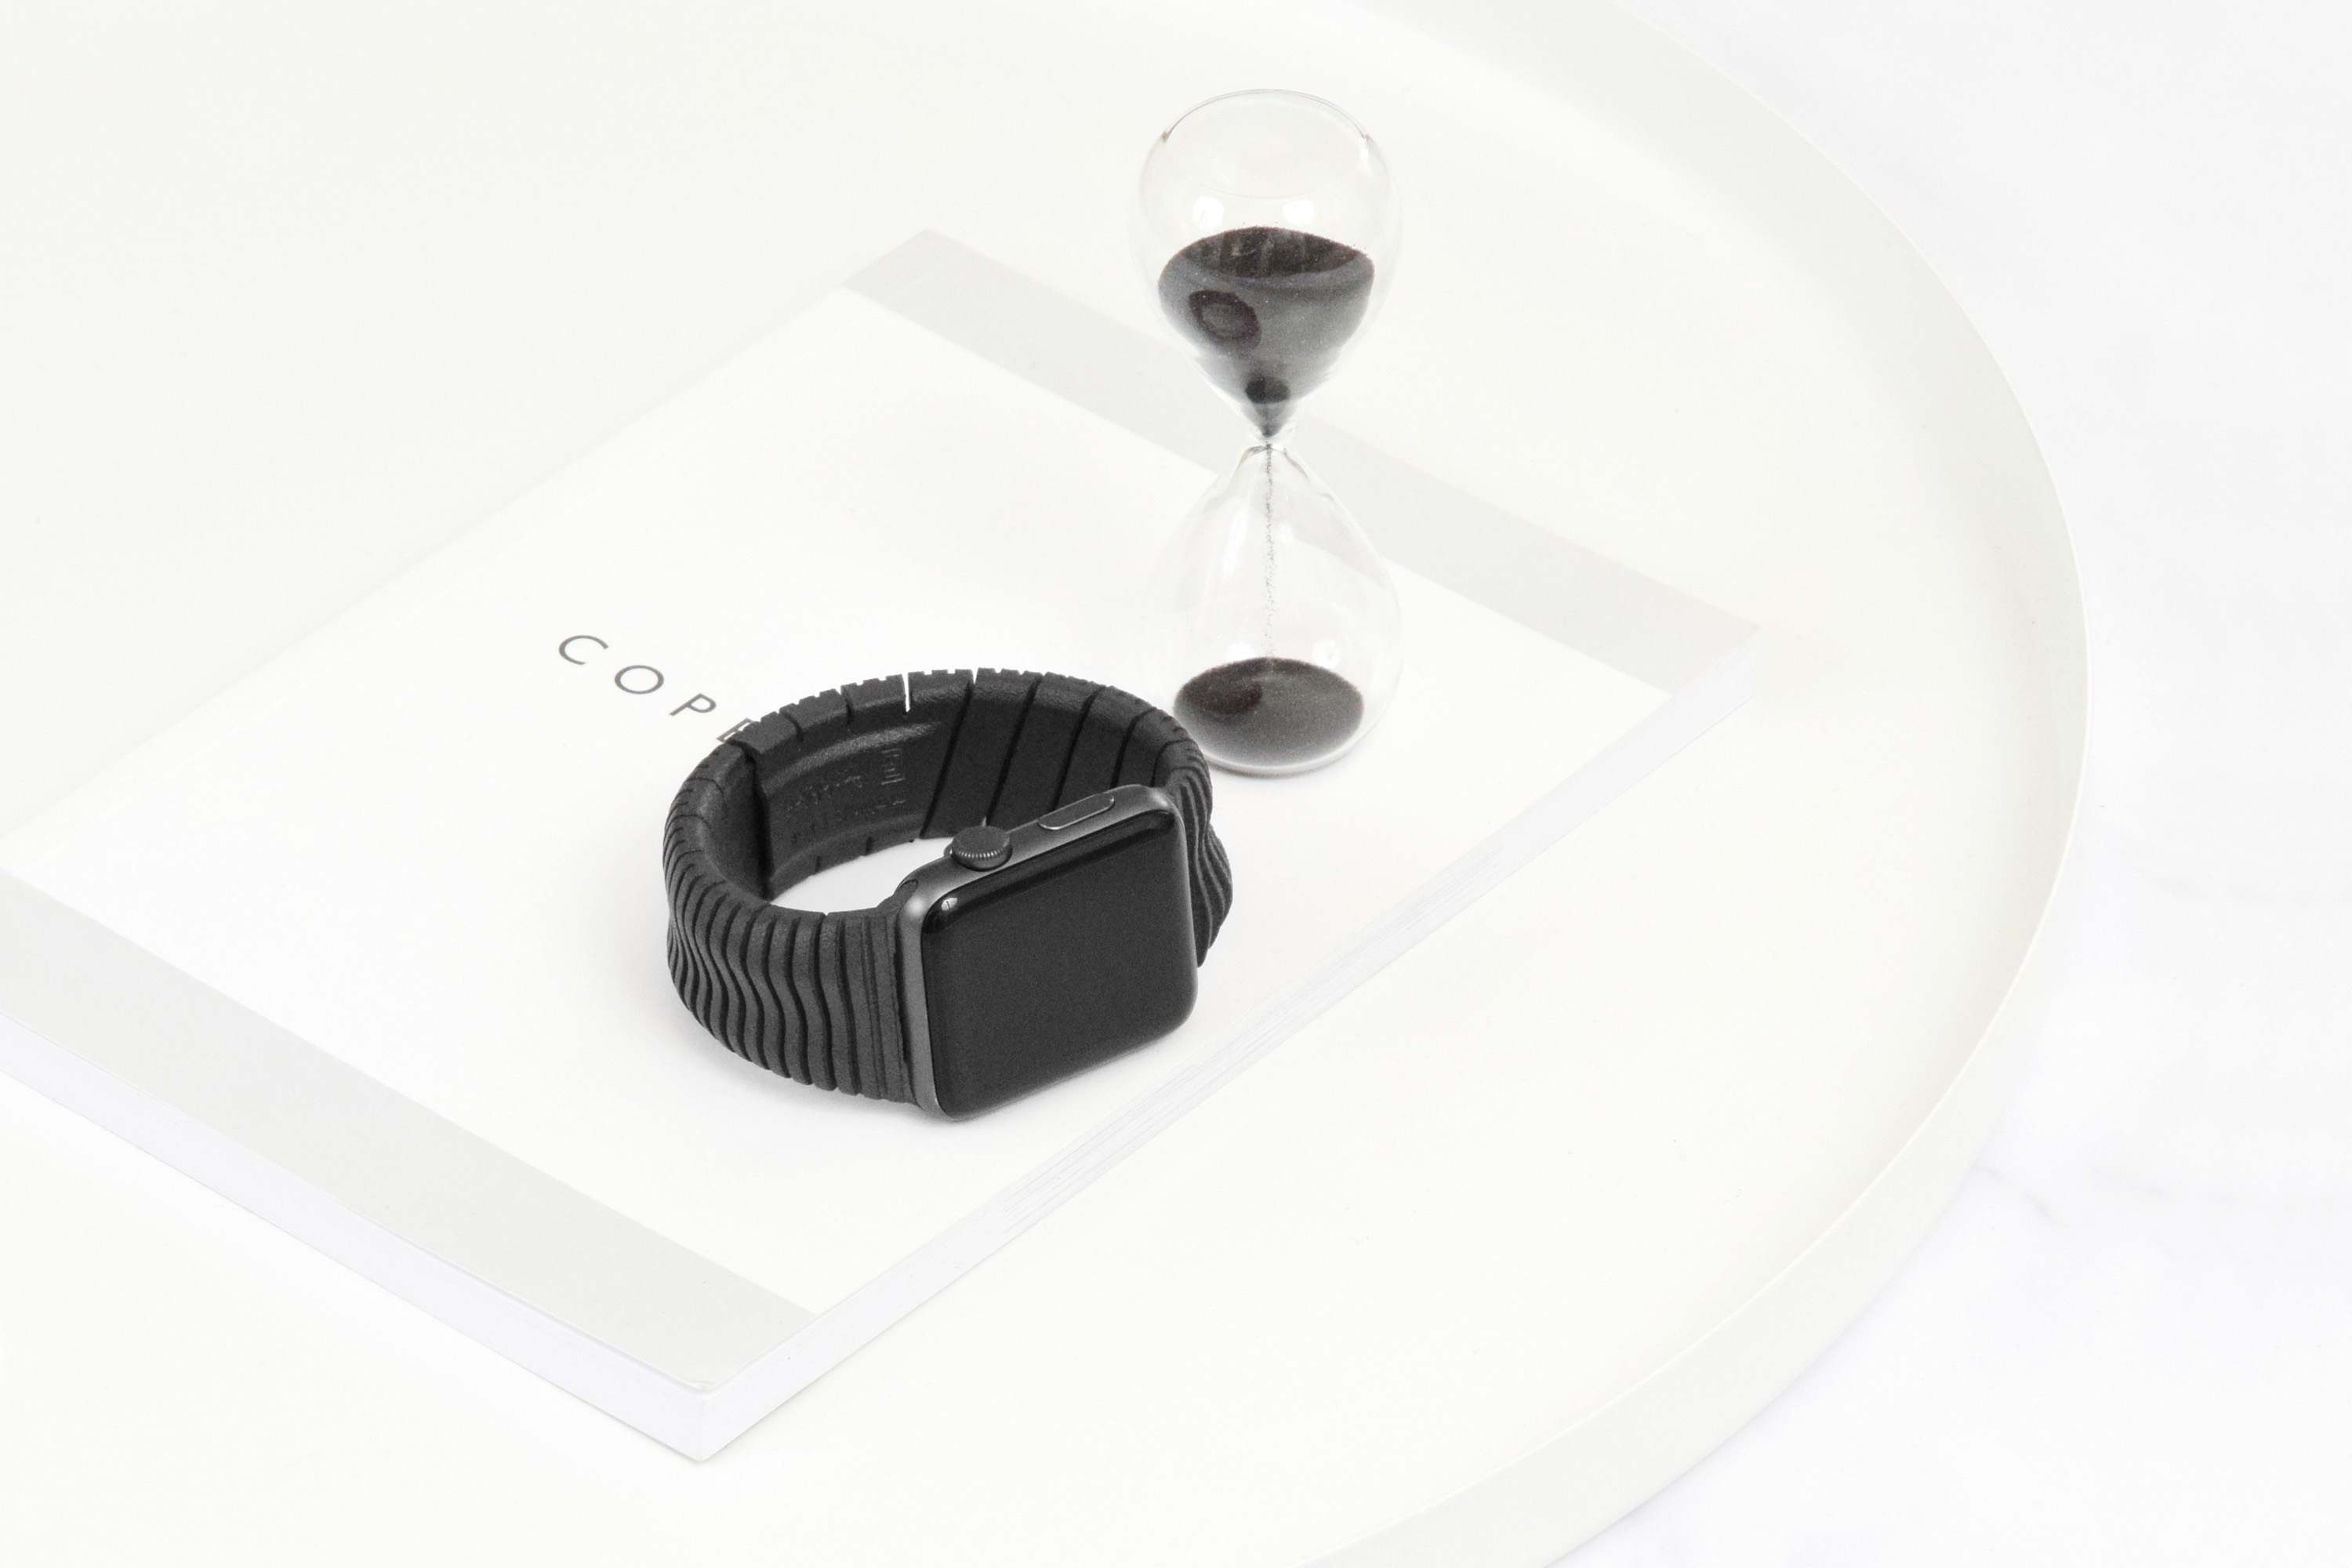 Freshfiber Apple Watch Band, Design by Matthijs Kok for Freshfiber